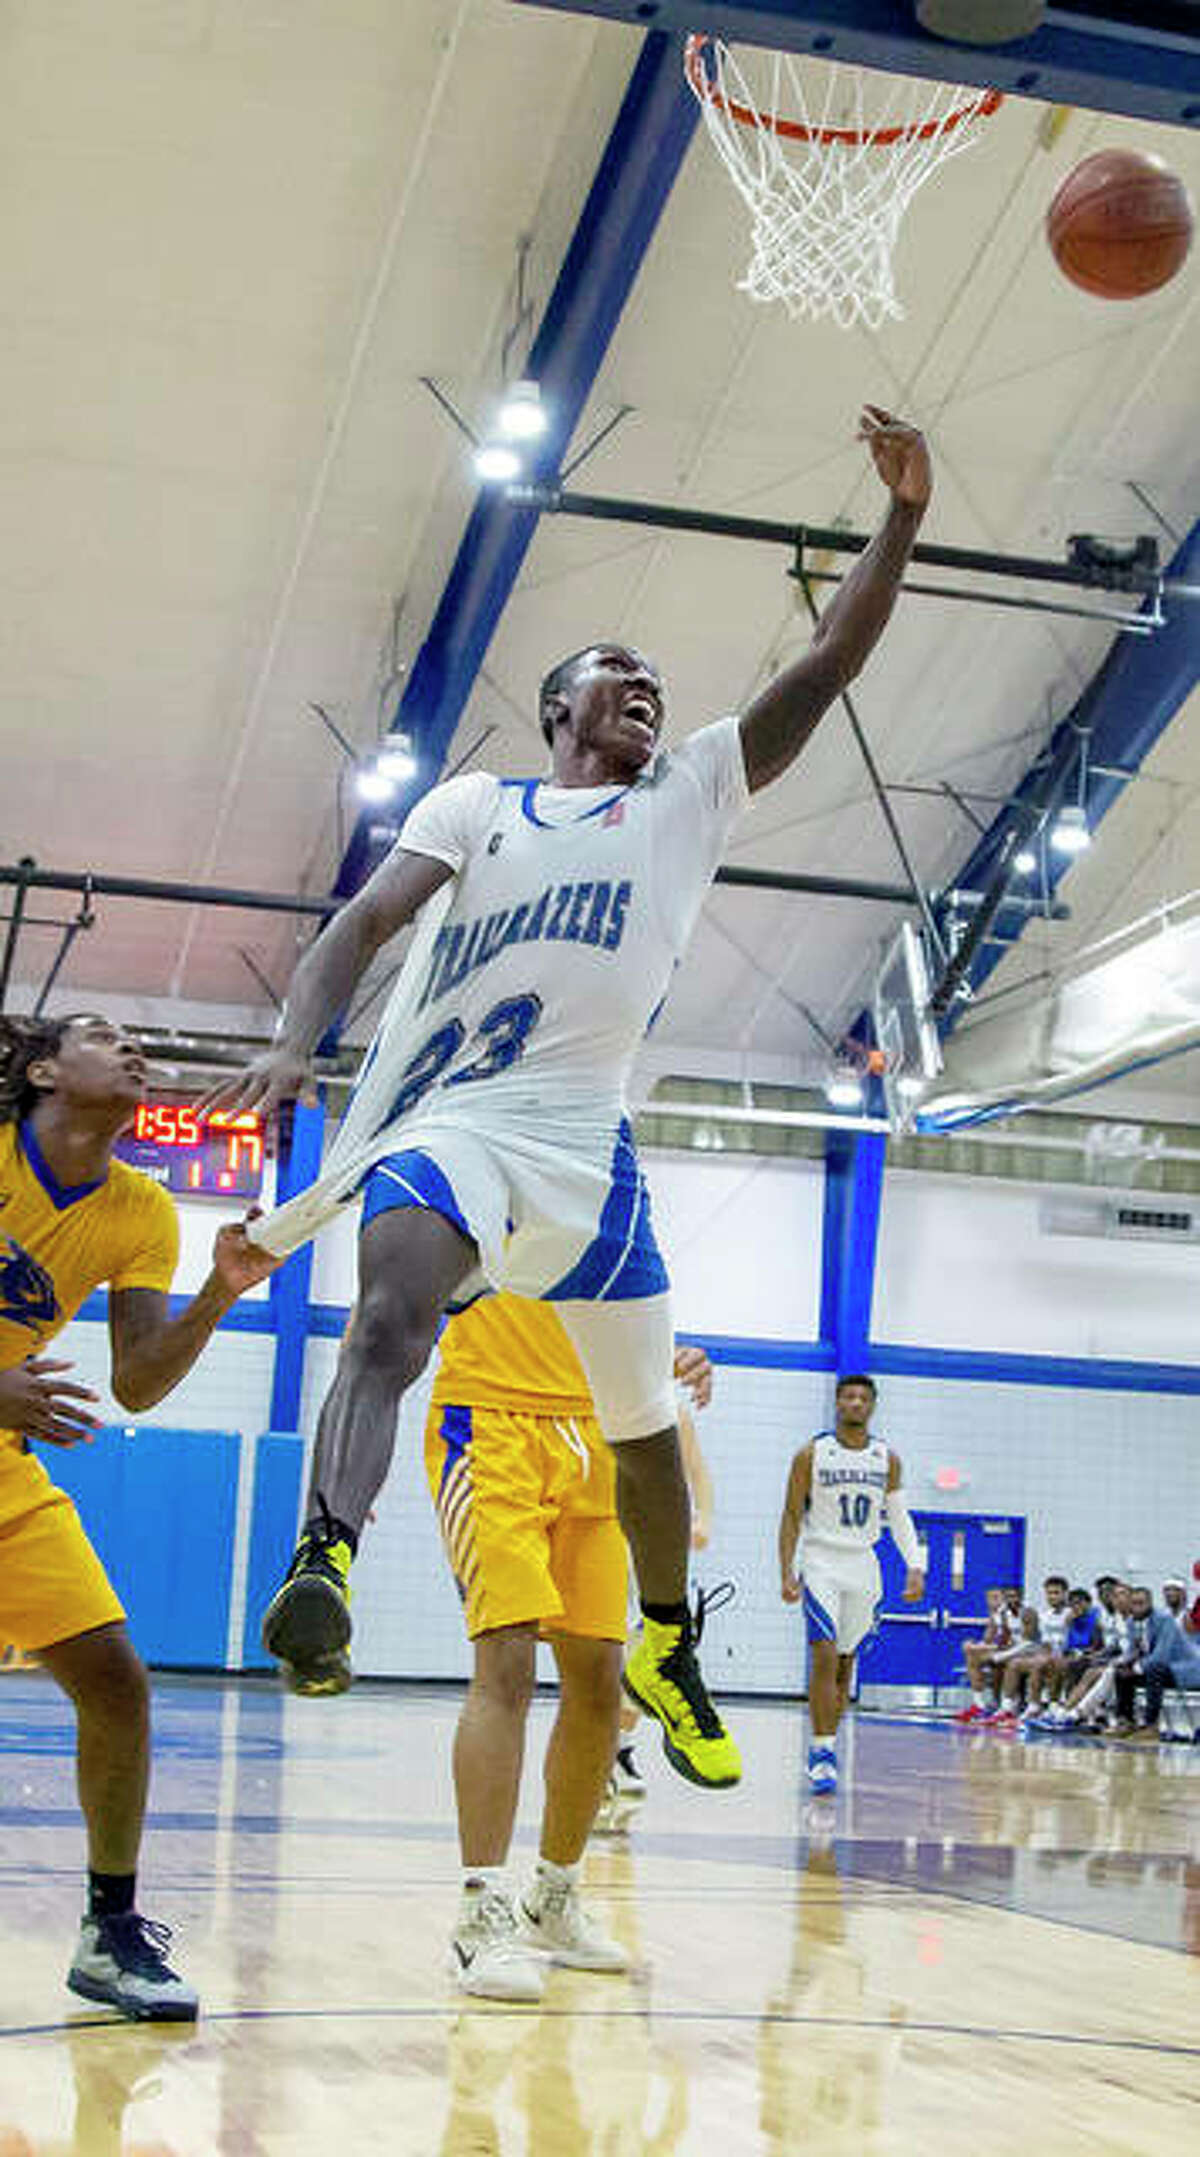 Lewis and Clark's DeAngelo Ware goes up for a shot, but is hindered by Southeastern Illinois College's MyQuion Garrett, who has a handful of Ware's jersey in Wednesday night's game at the River Bend Arena. Ware scored 22 points in LCCC's 86-73 victory